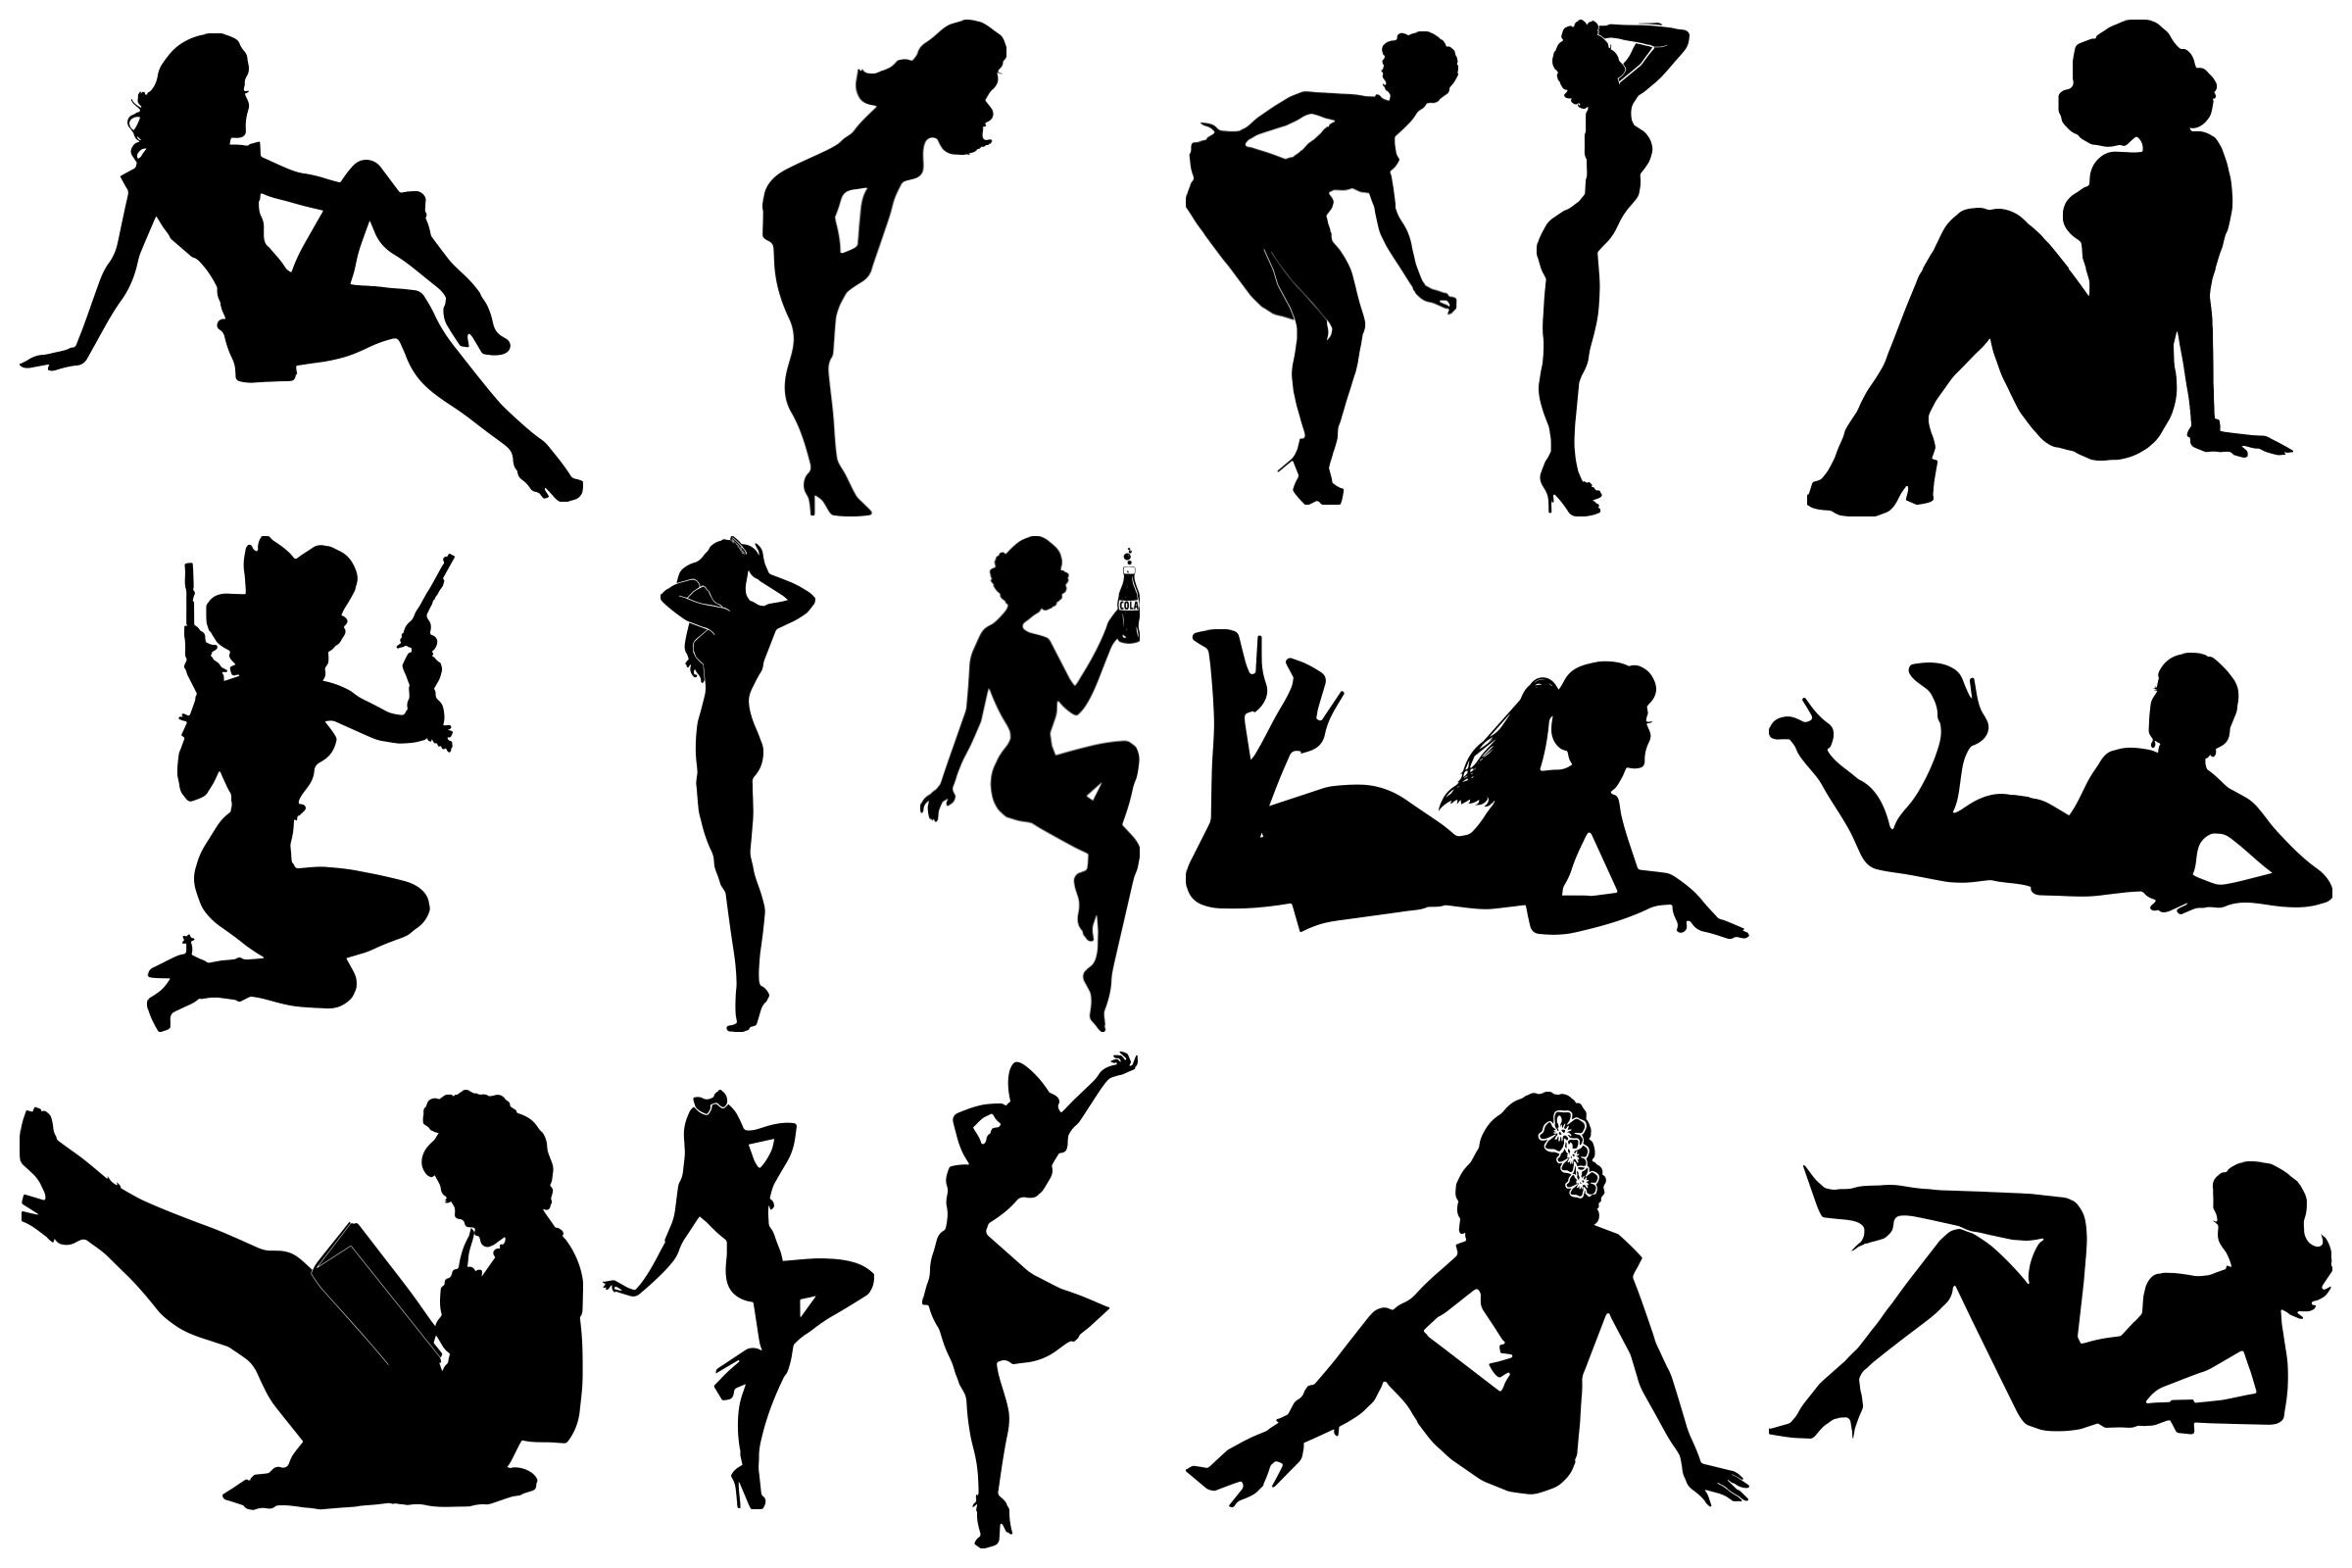 pin up silhouette pin up girl silhouette clipart 10 free cliparts download pin silhouette up